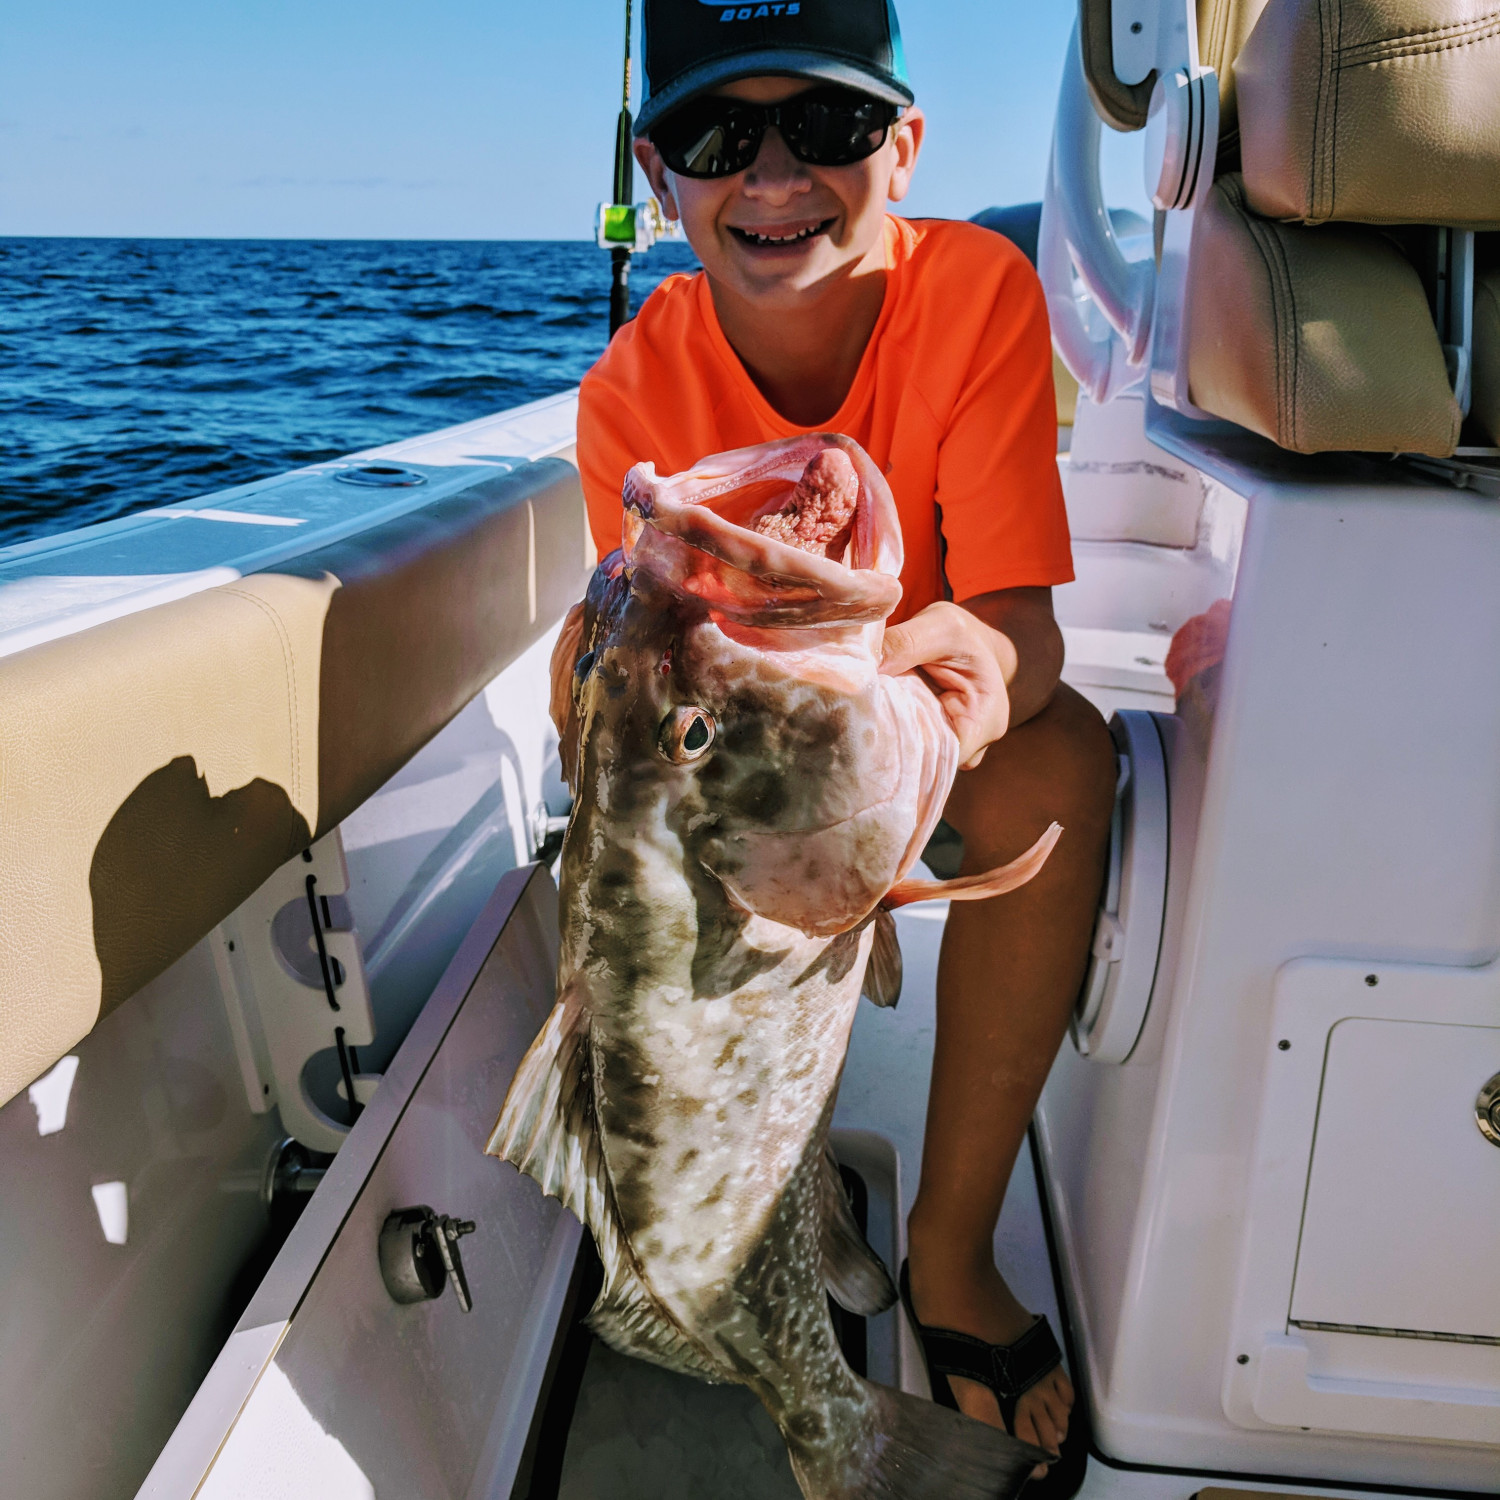 Title: Catching the limit - On board their Sportsman Open 282 Center Console - Location: Cape Coral, Florida. Participating in the Photo Contest #SportsmanDecember2017